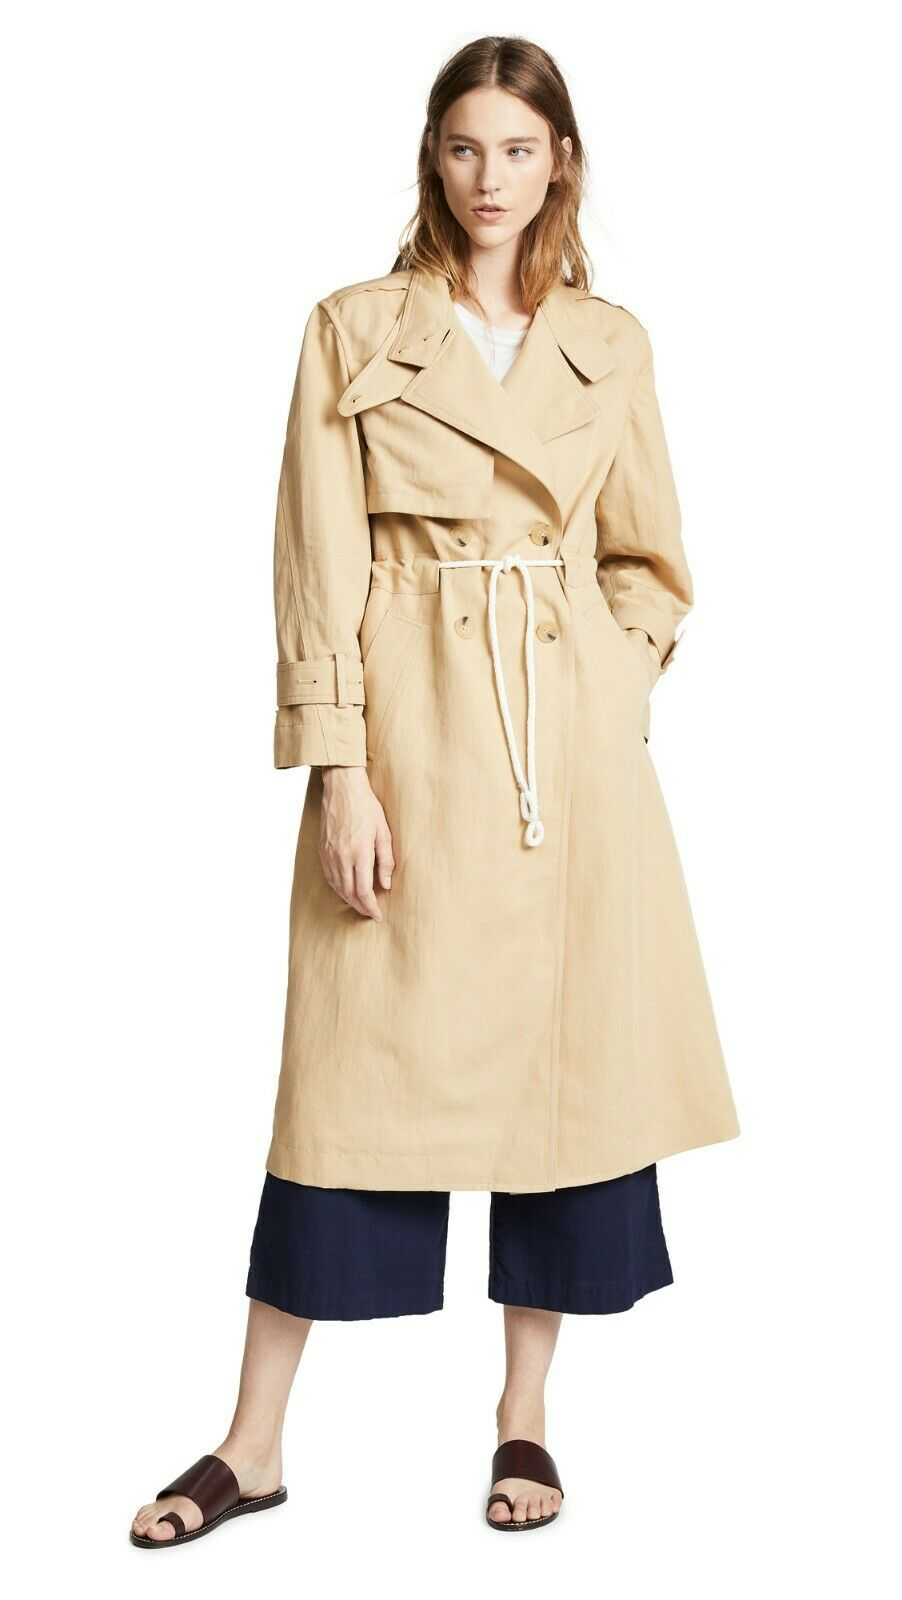 Vince Long Linen Cotton Drawstring Trench Coat Size XS Fit to S  645 NWT